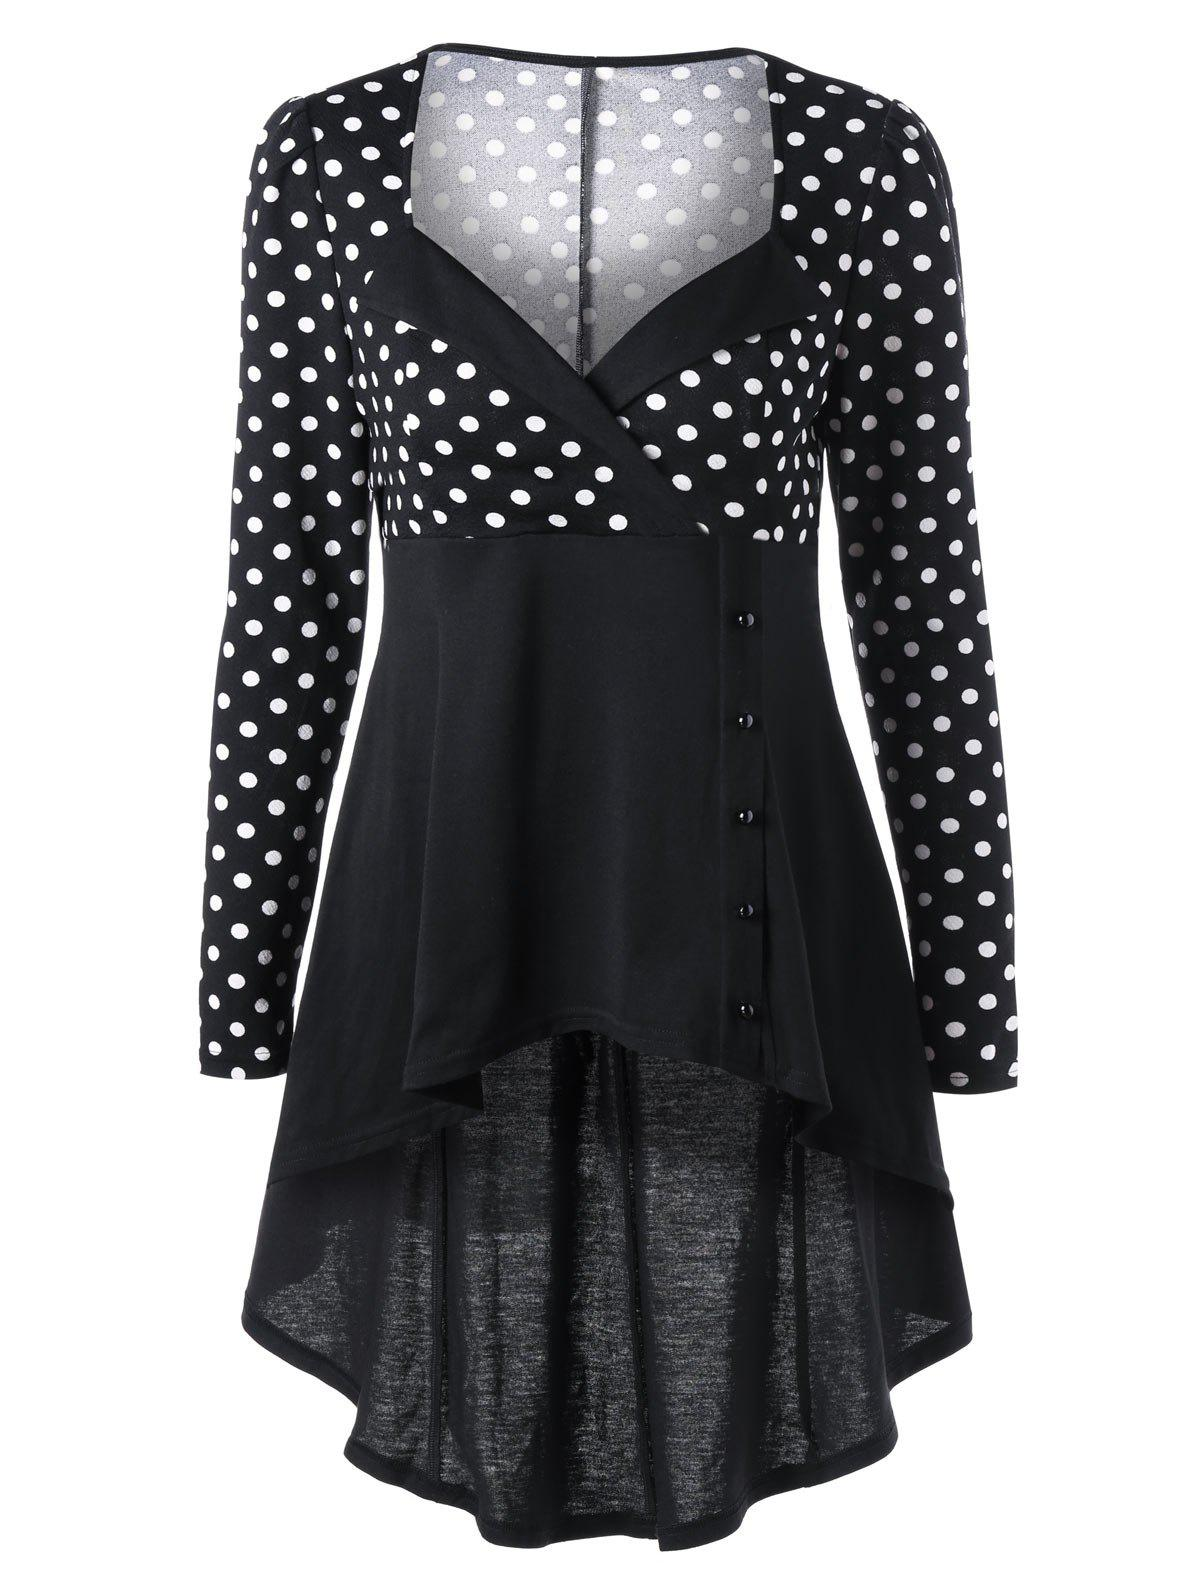 Sweetheart Neck Polka Dot Longline Cocktail TopWOMEN<br><br>Size: M; Color: BLACK WHITE; Material: Polyester,Spandex; Shirt Length: Long; Sleeve Length: Full; Collar: Sweetheart Neck; Style: Vintage; Embellishment: Button; Pattern Type: Polka Dot; Season: Fall,Spring; Weight: 0.3100kg; Package Contents: 1 x Top;